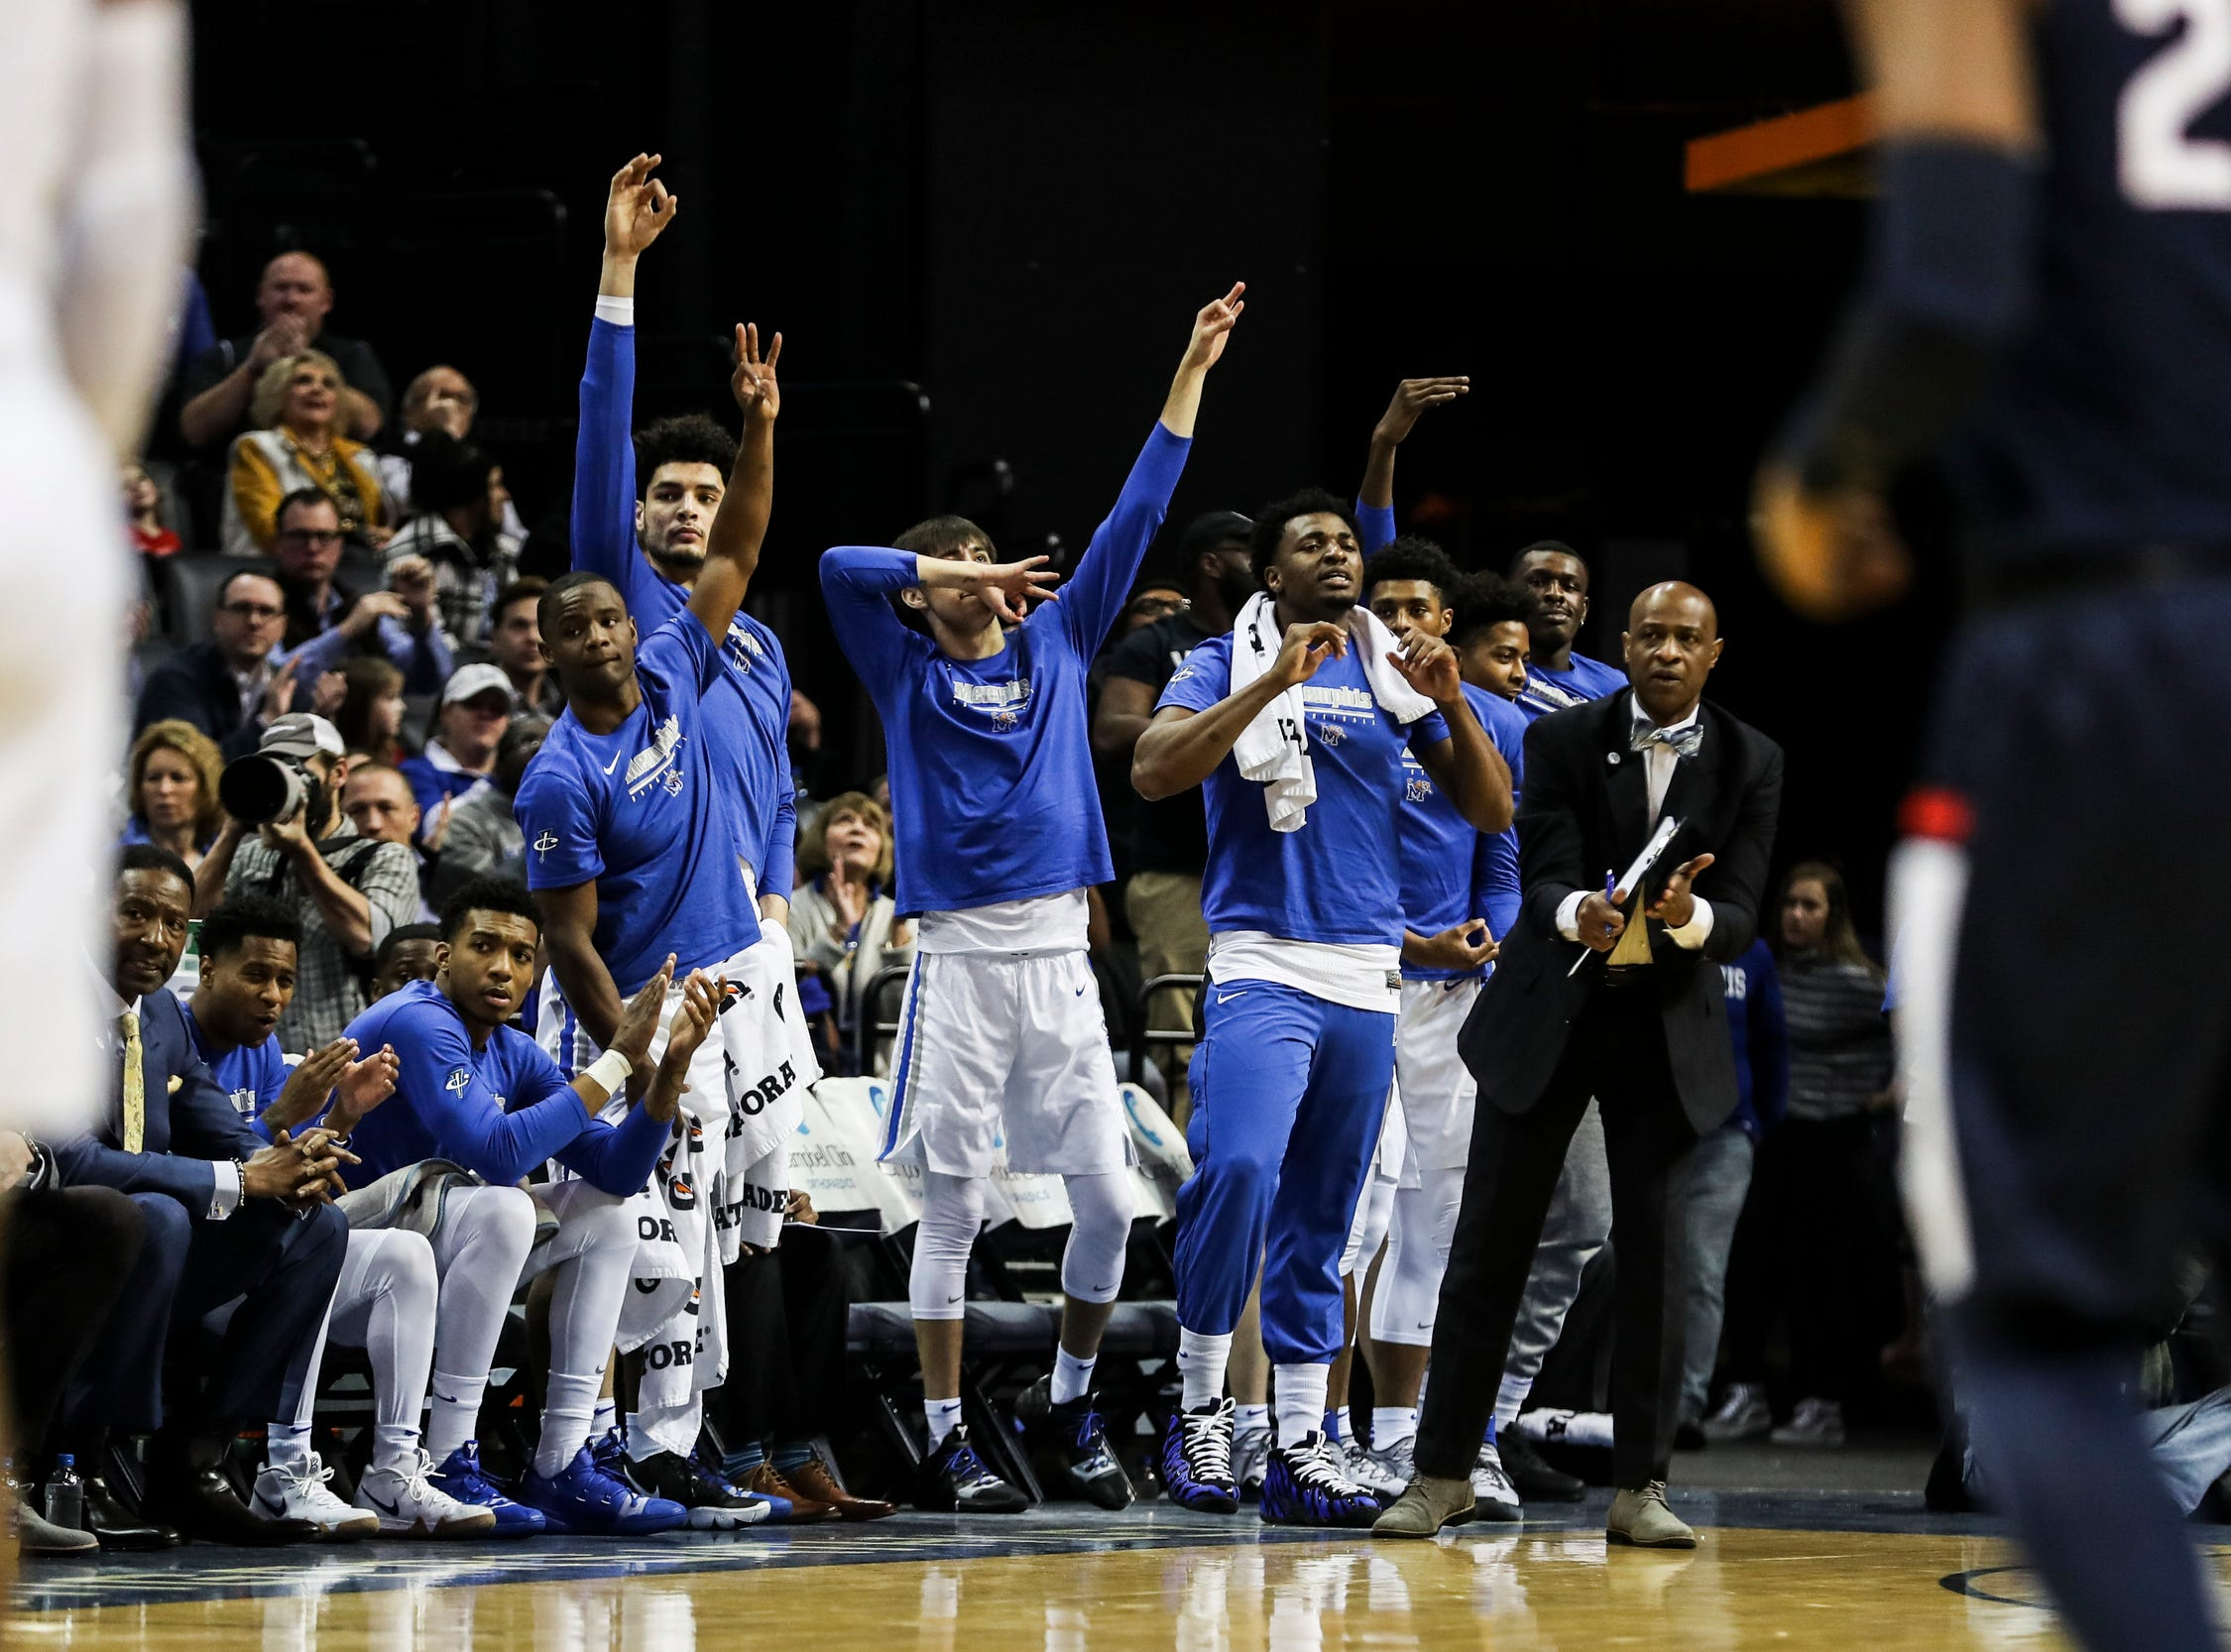 February 10, 2019 - The Memphis bench reacts during Sunday's game versus Connecticut at the FedExForum.